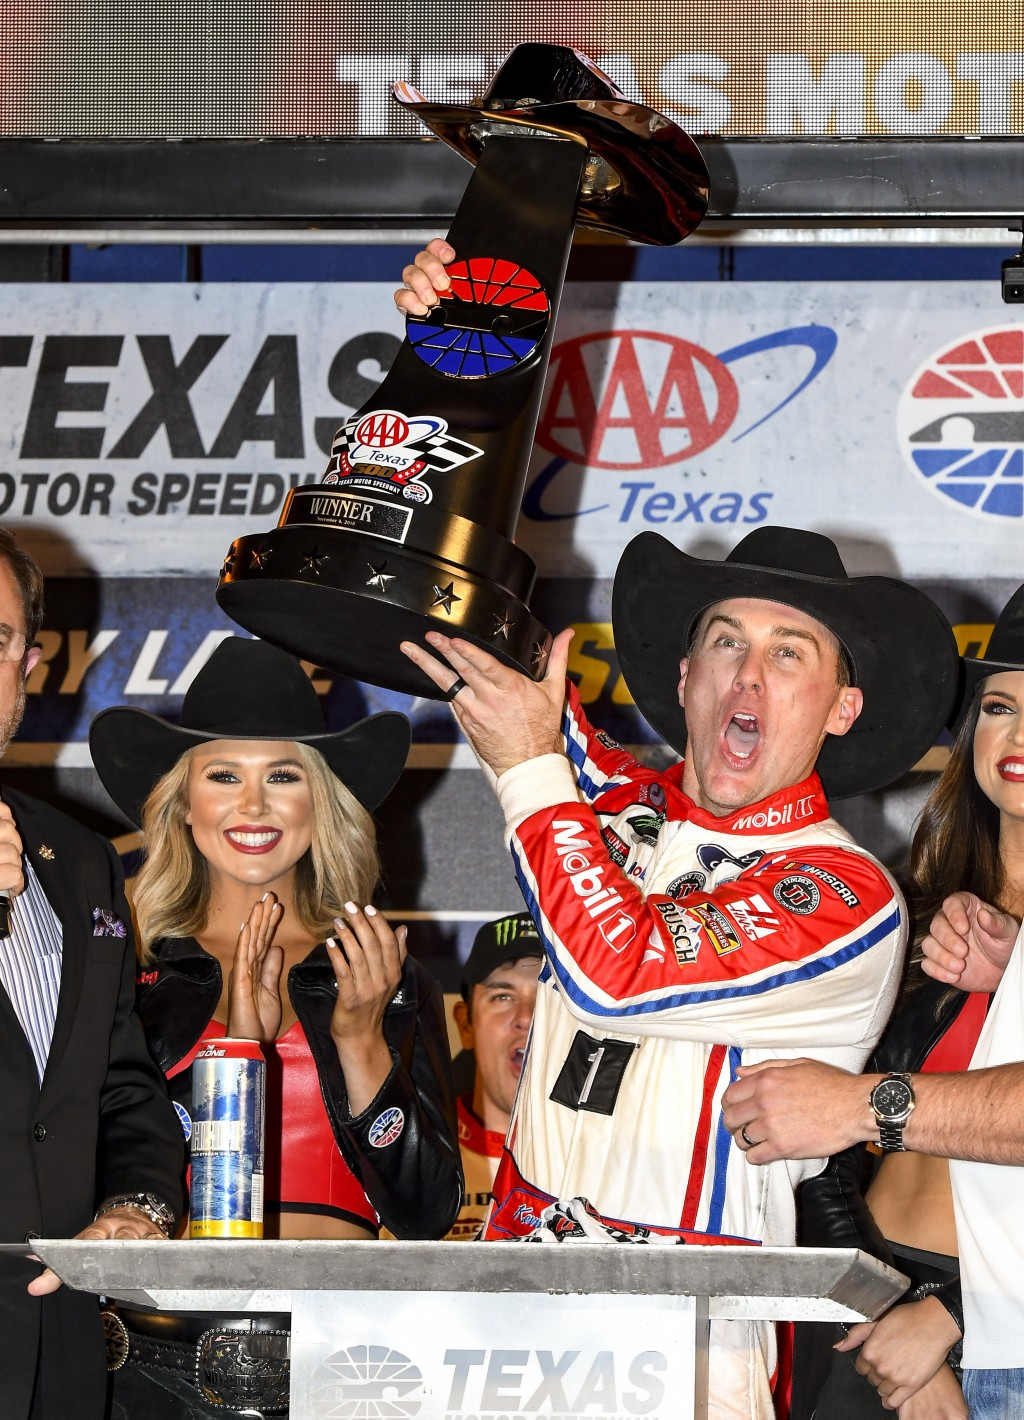 FILE - In this Sunday, Nov. 4, 2018, file photo, Kevin Harvick celebrates in Victory Lane after winning a NASCAR Cup auto race at Texas Motor Speedway